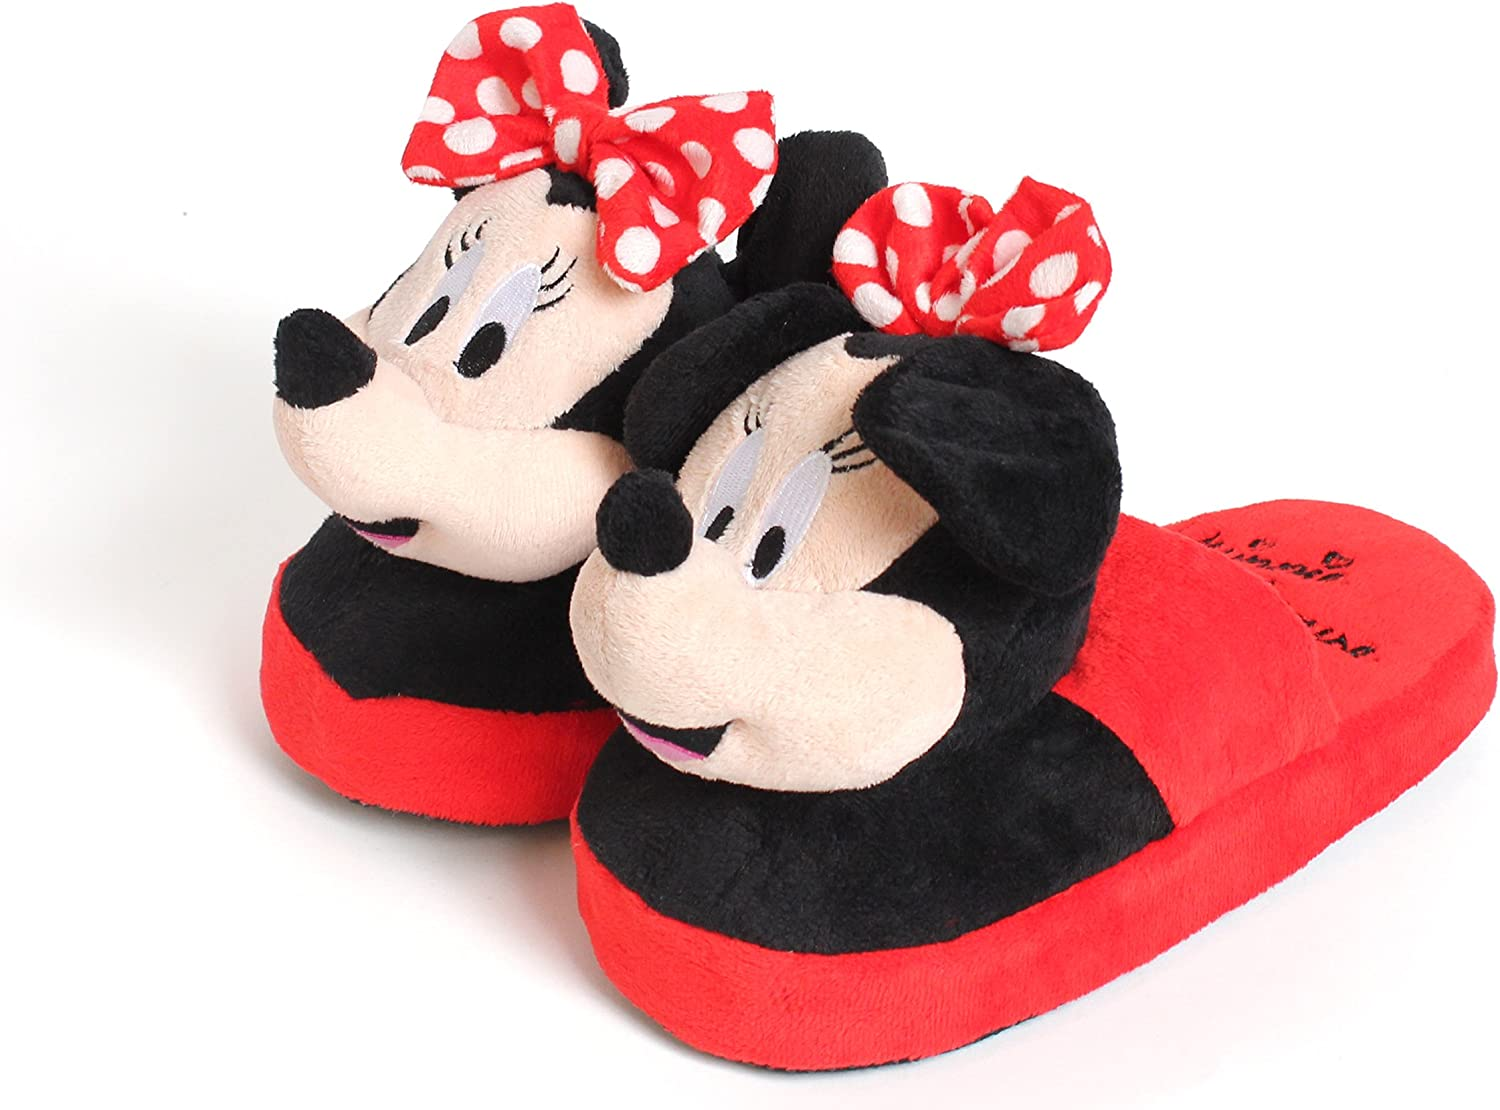 Disney Stompeez - Zapatillas de estar por casa - Diseño Minnie Mouse - S